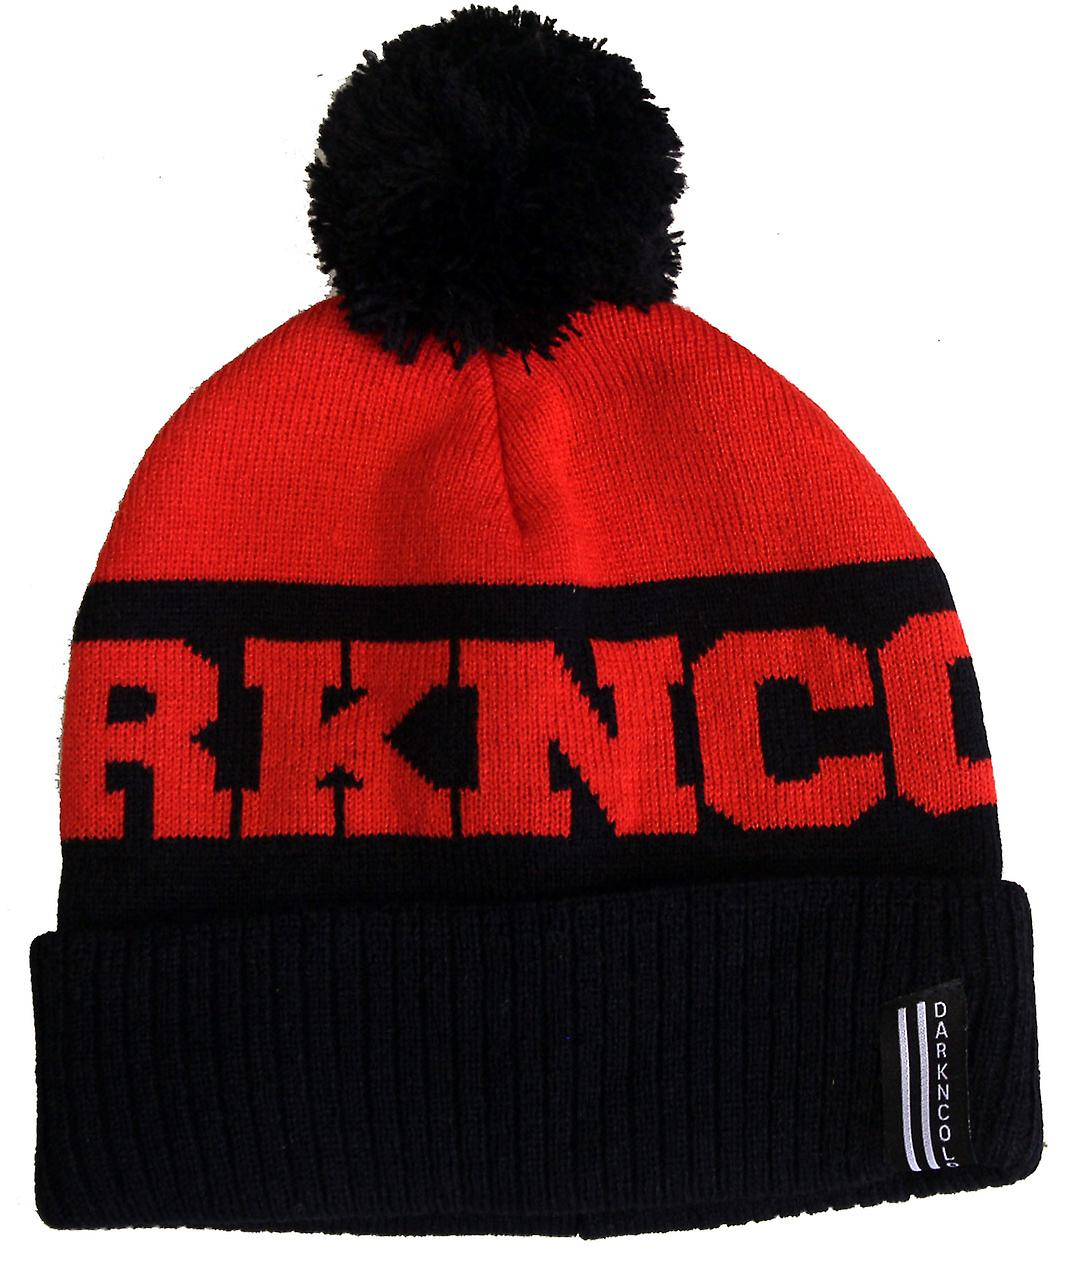 Dark n Cold Inner City Beanie Black Red